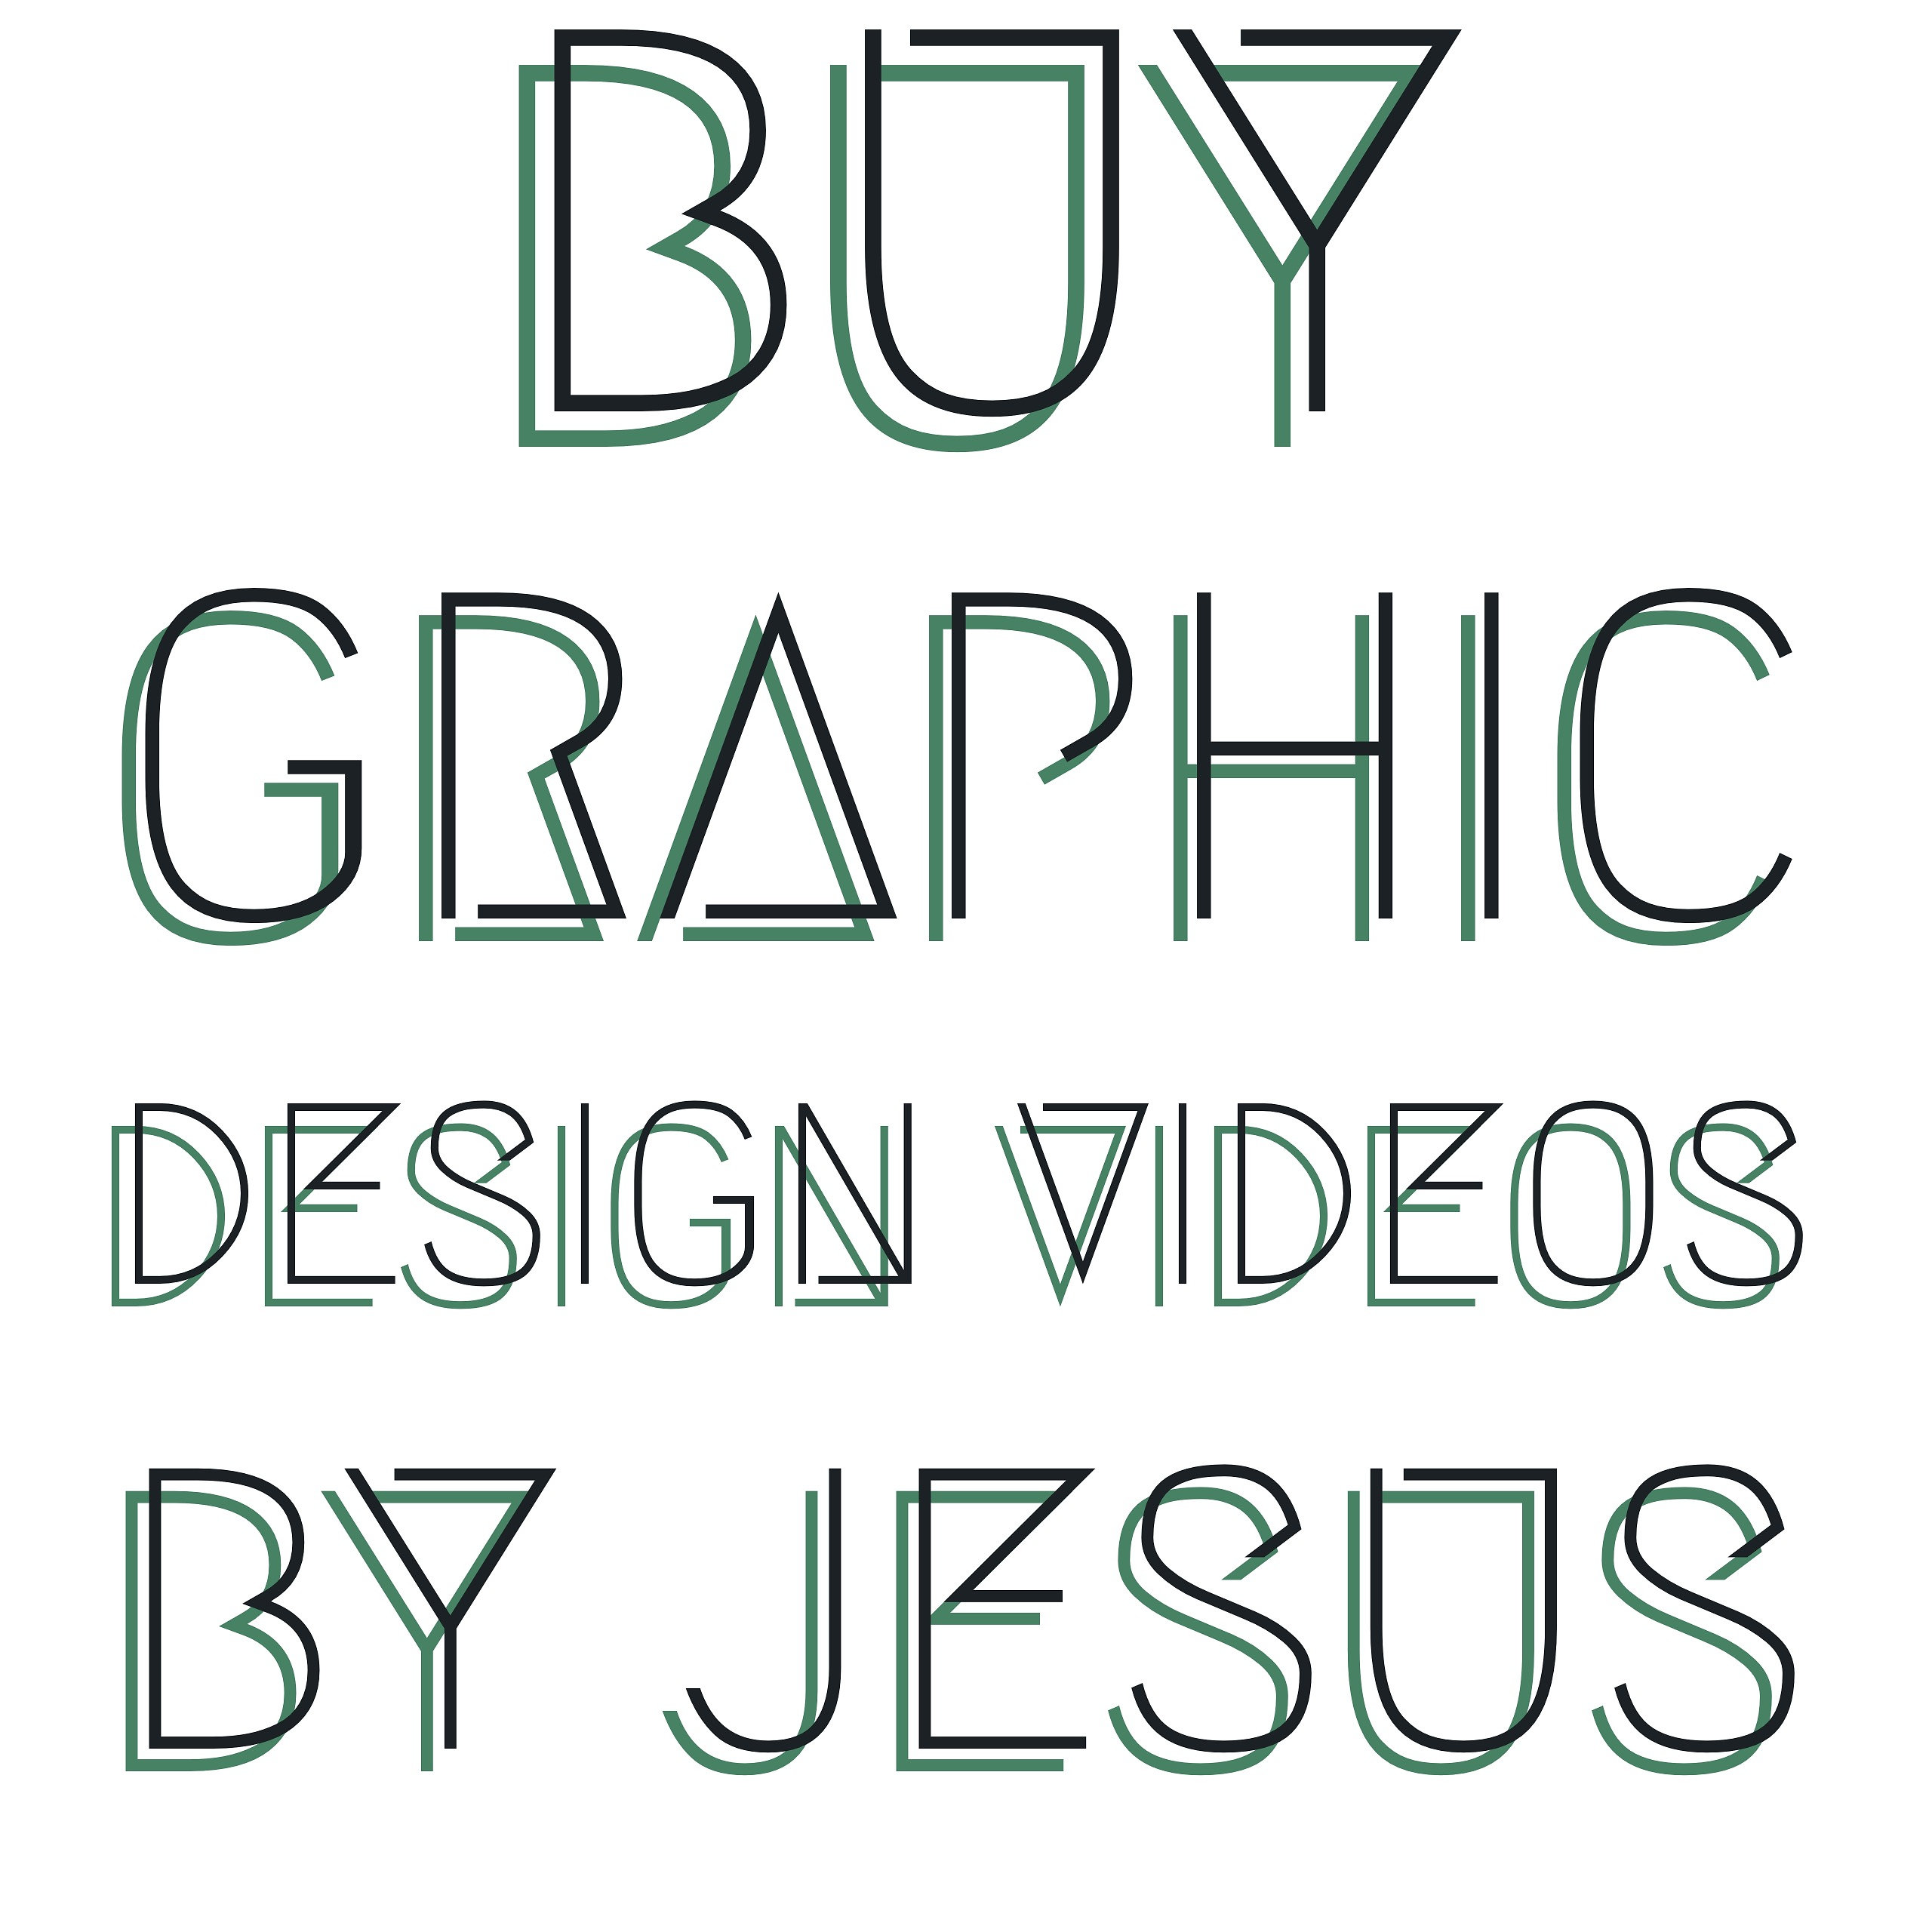 home inspiring big and bold graphic videos he can create intros banners logo reveals applications website demos clips films advertisement videos animations game designs